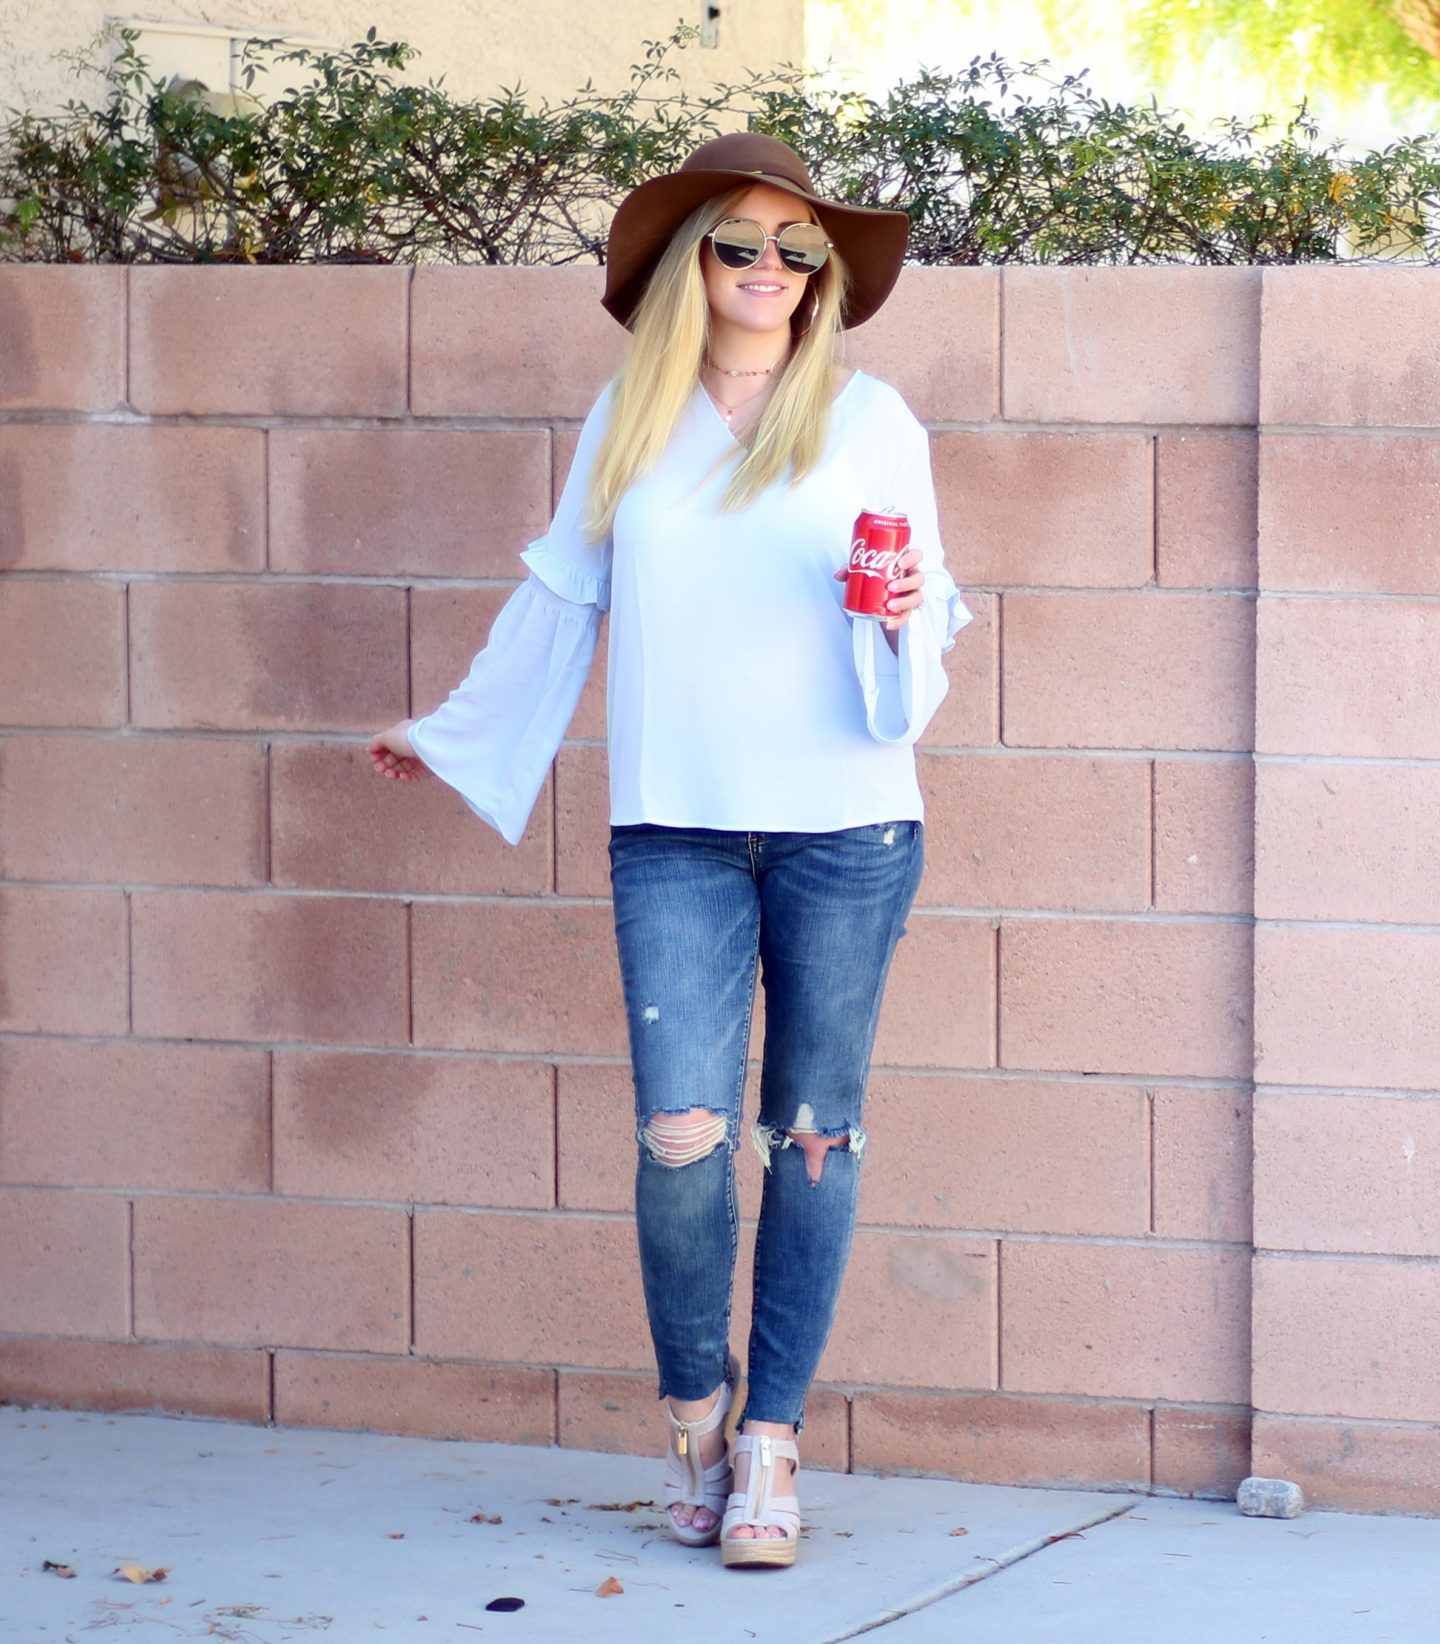 Spring Outfit: Floppy Hat